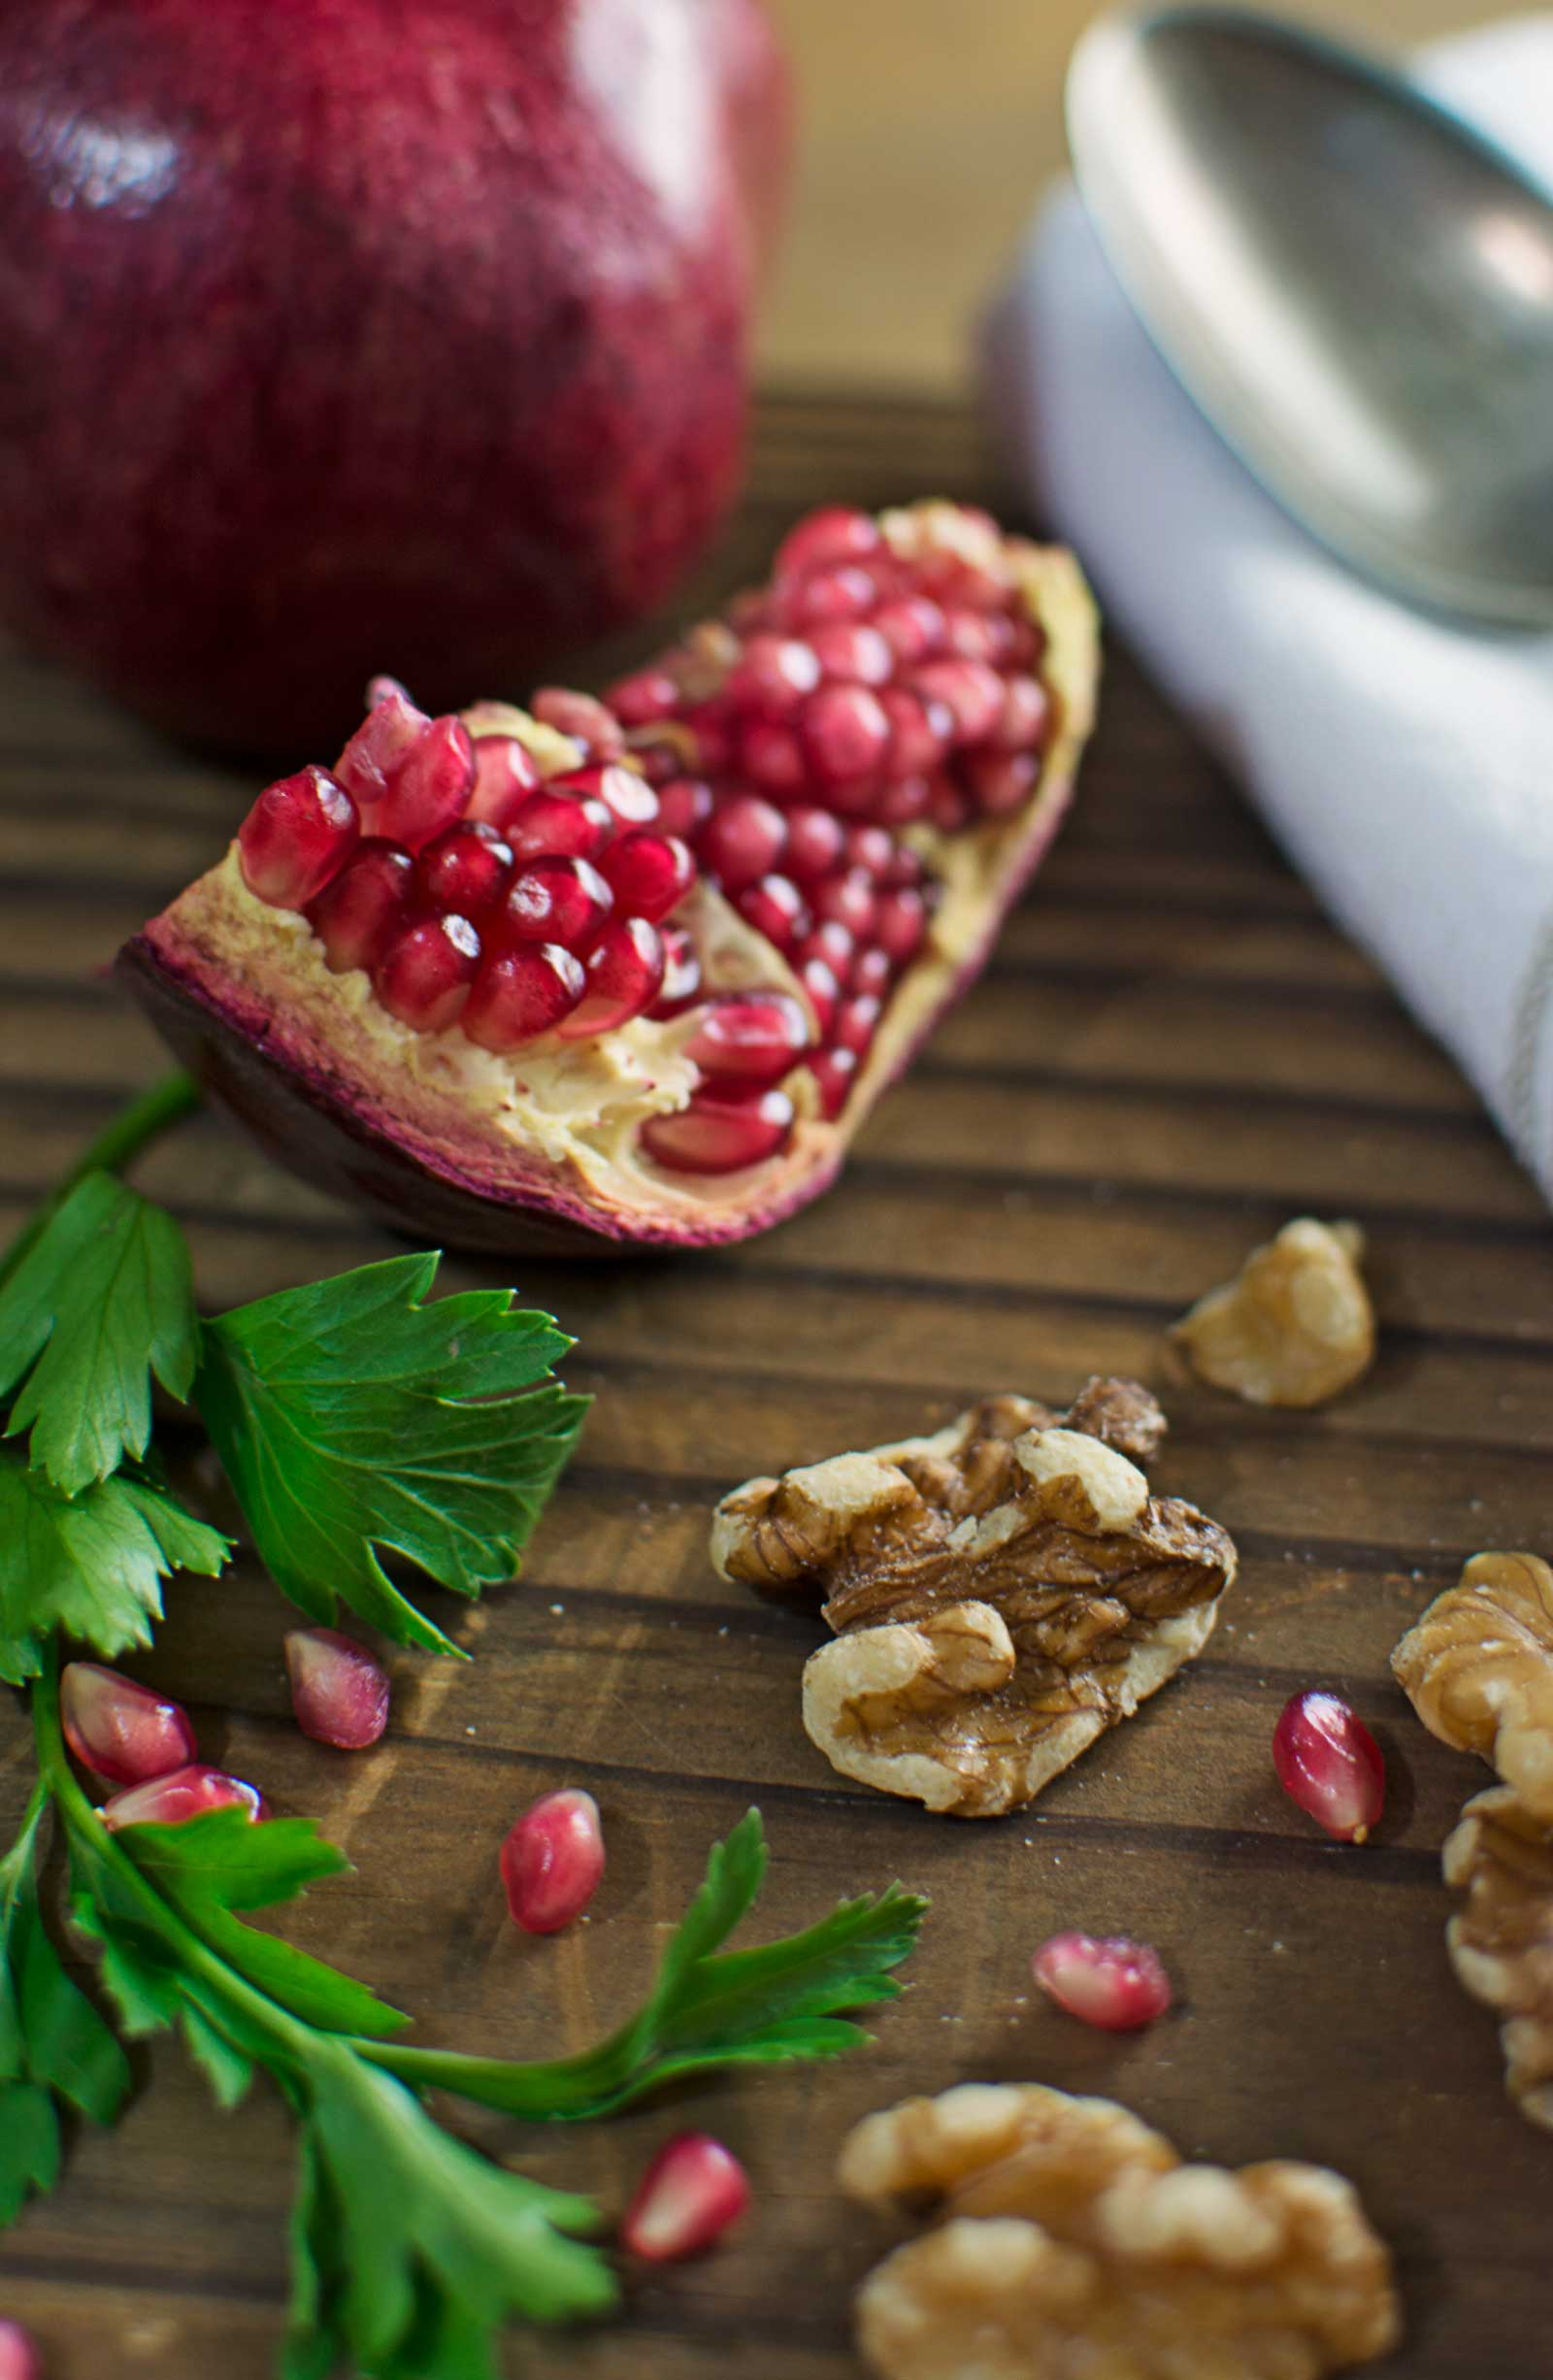 Ingredients for Fesenjan, and Iranian Chicken Stew with Pomegranates and Walnuts. Recipe found @LittleFiggyFood